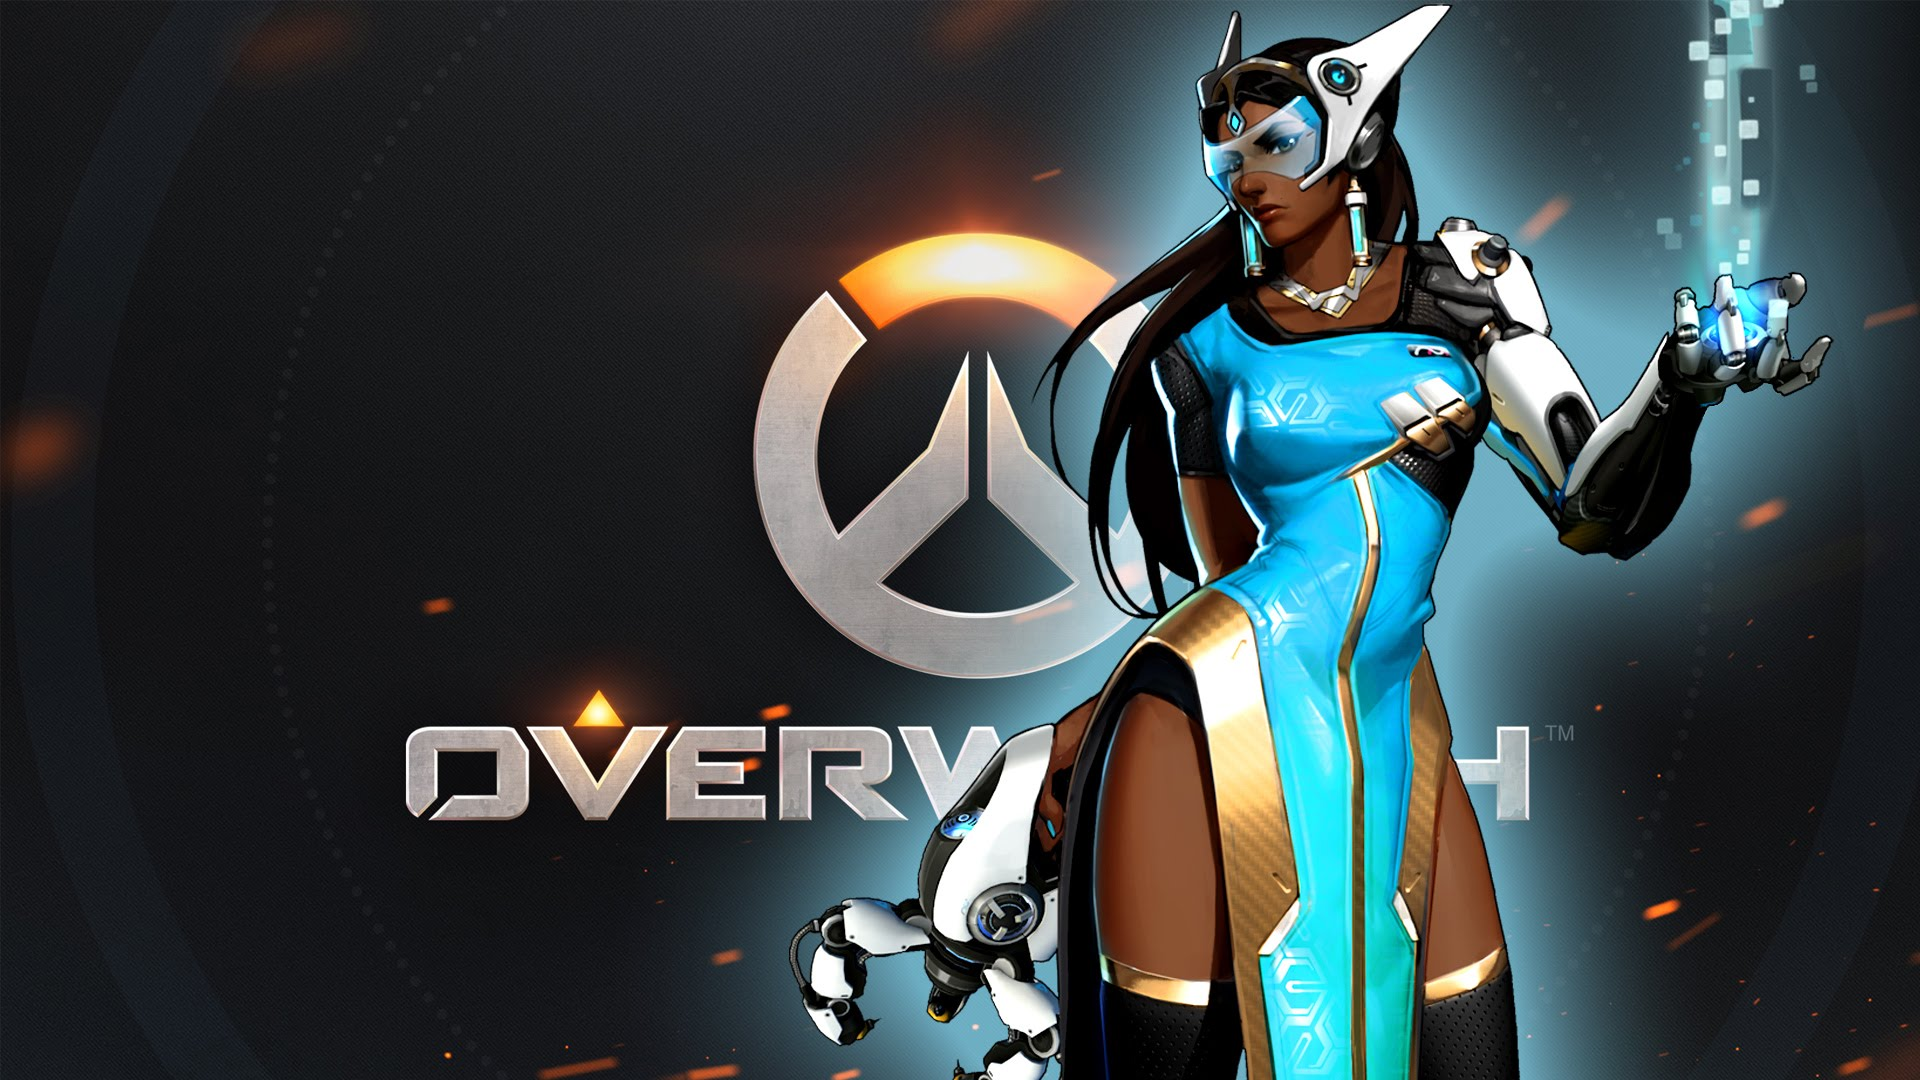 Overwatch : Symmetra HQ wallpapers